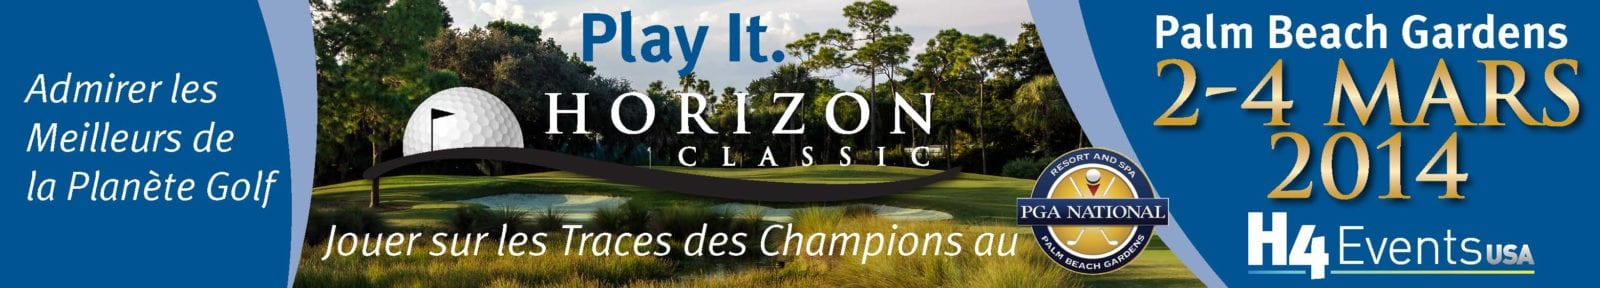 Horizon Classic H4Events USA